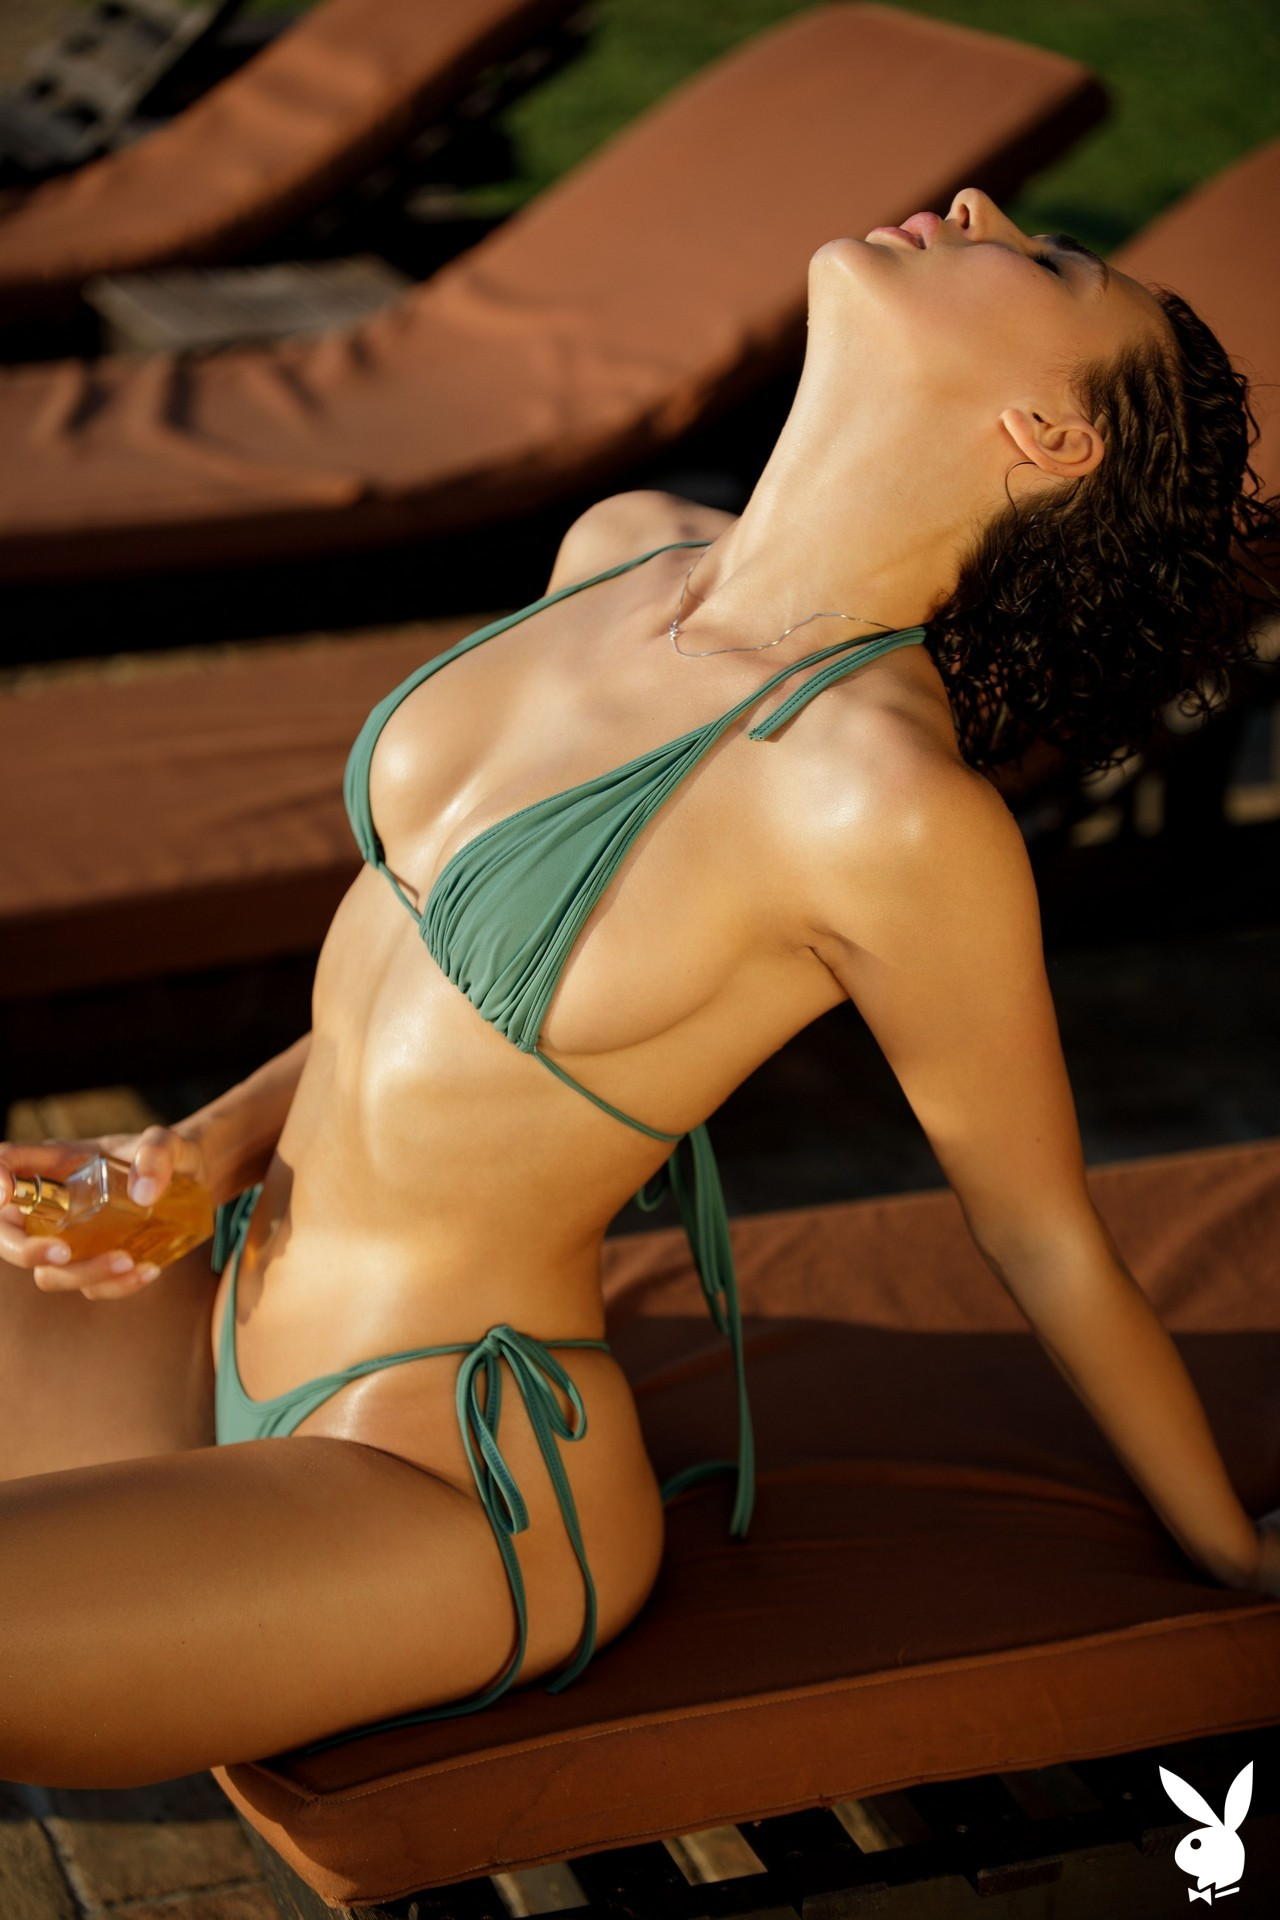 Gena Miller In Immerse Yourself Playboy Plus (8)